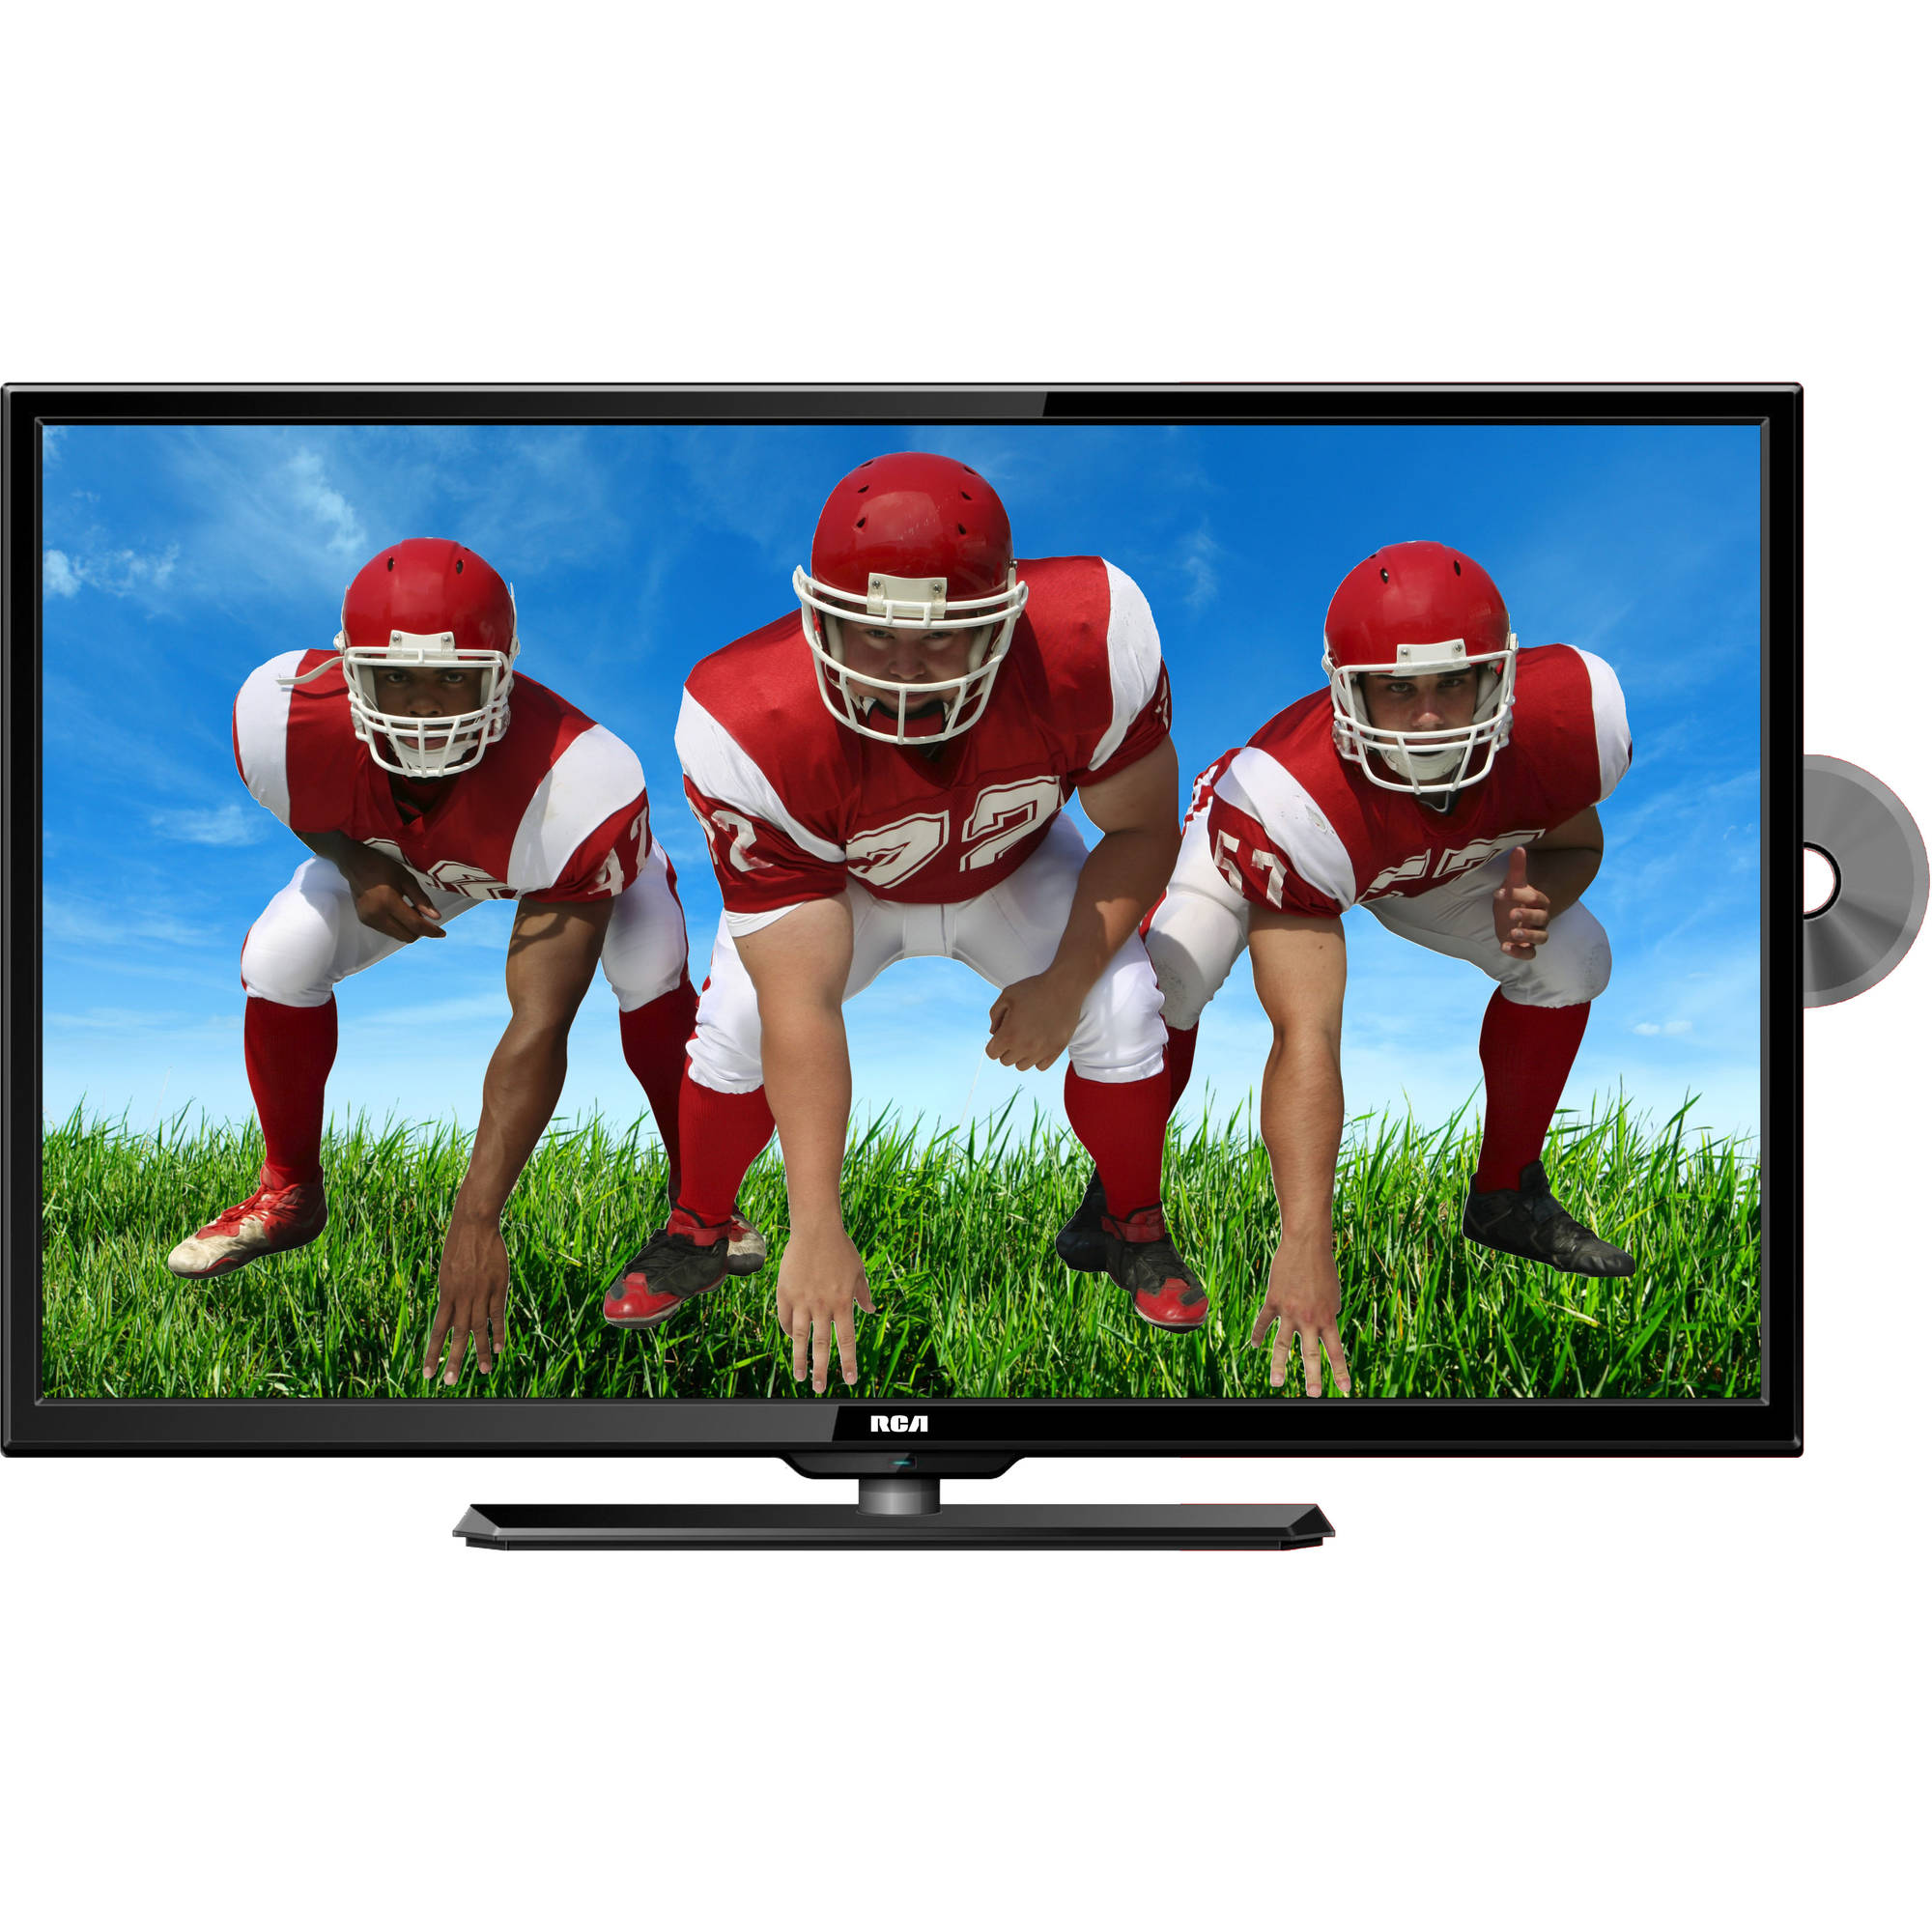 "RCA 40"" Class FHD (1080P) FHD (1080P) TV (RLDEDV4001-A) with Built-in DVD"